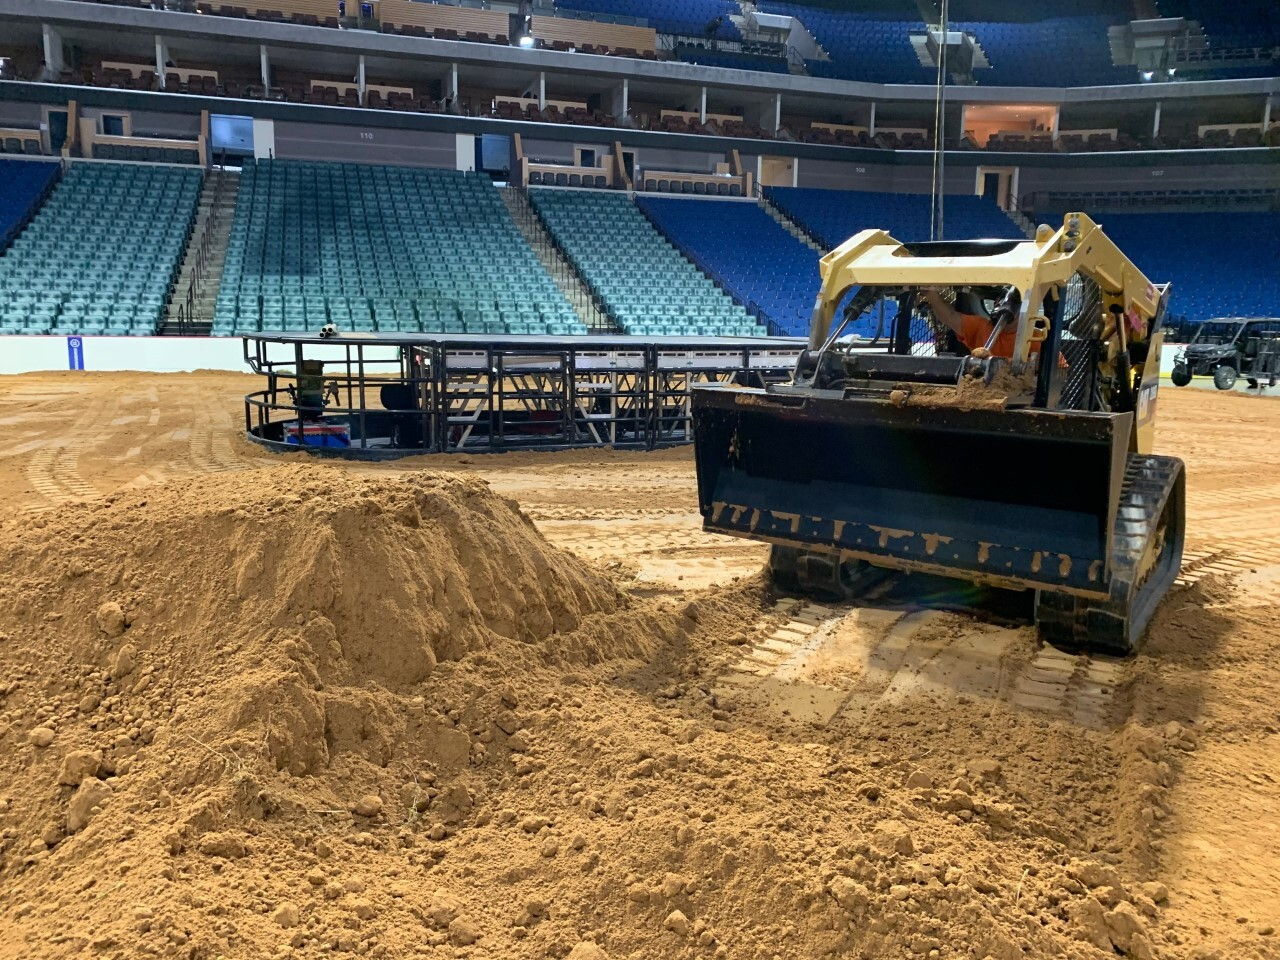 BOK Center preps for PBR event on Saturday and Sunday